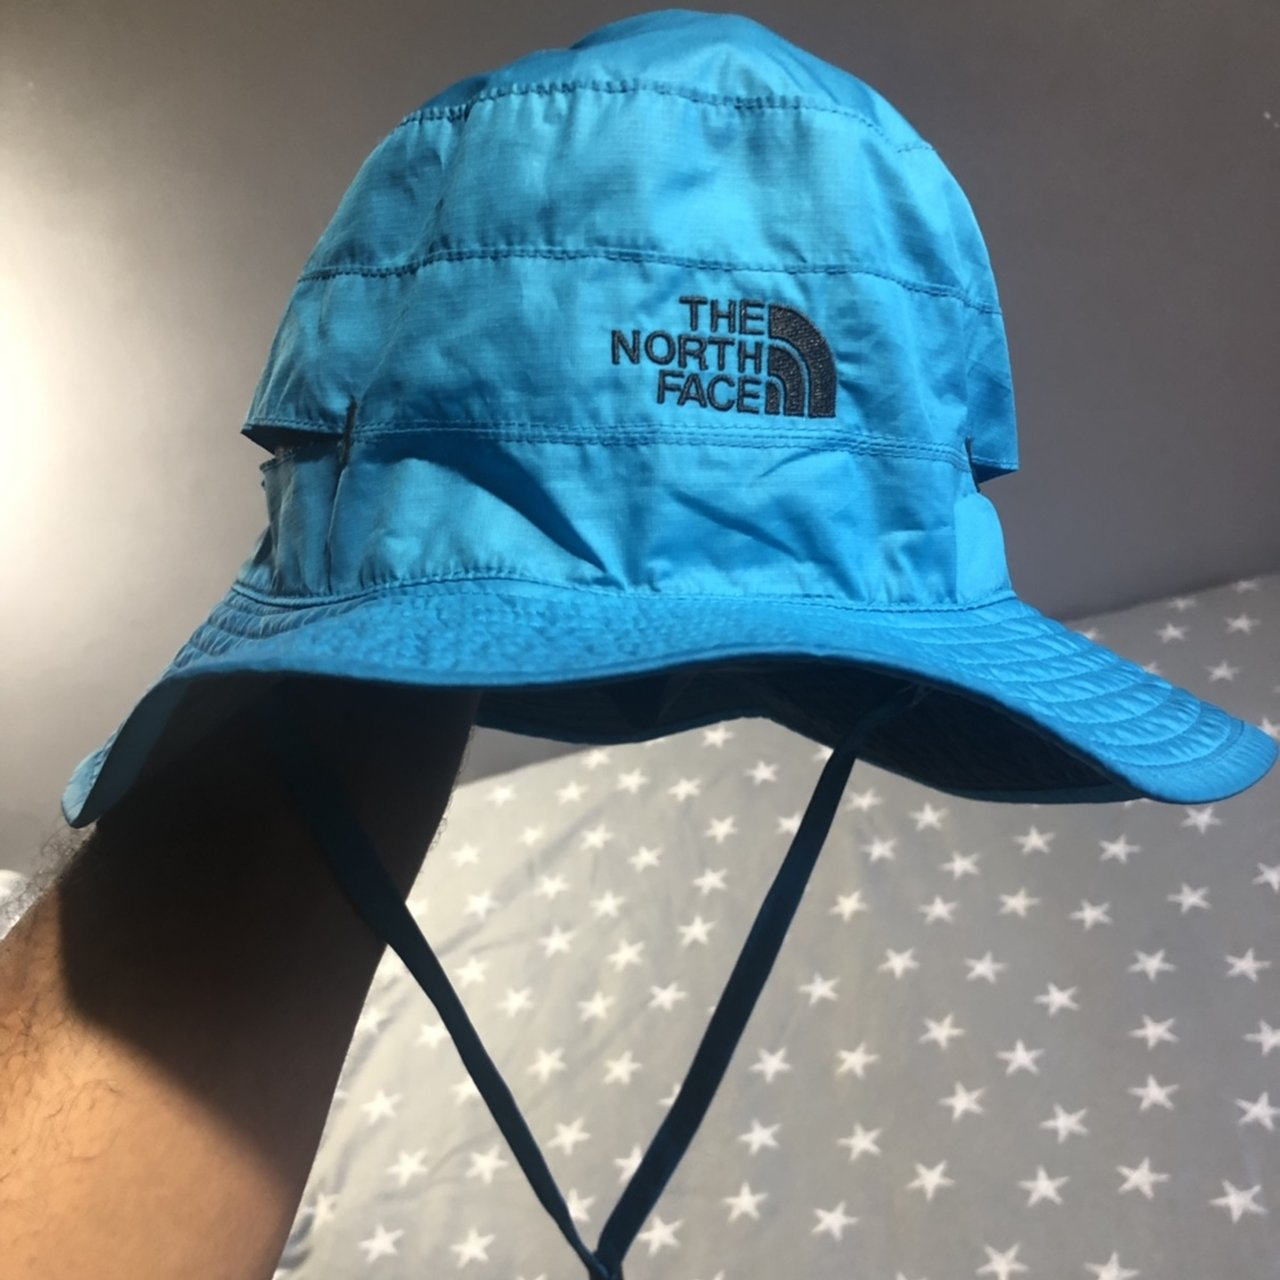 8dc71fb1a80 THE NORTH FACE BUCKET HAT COMES